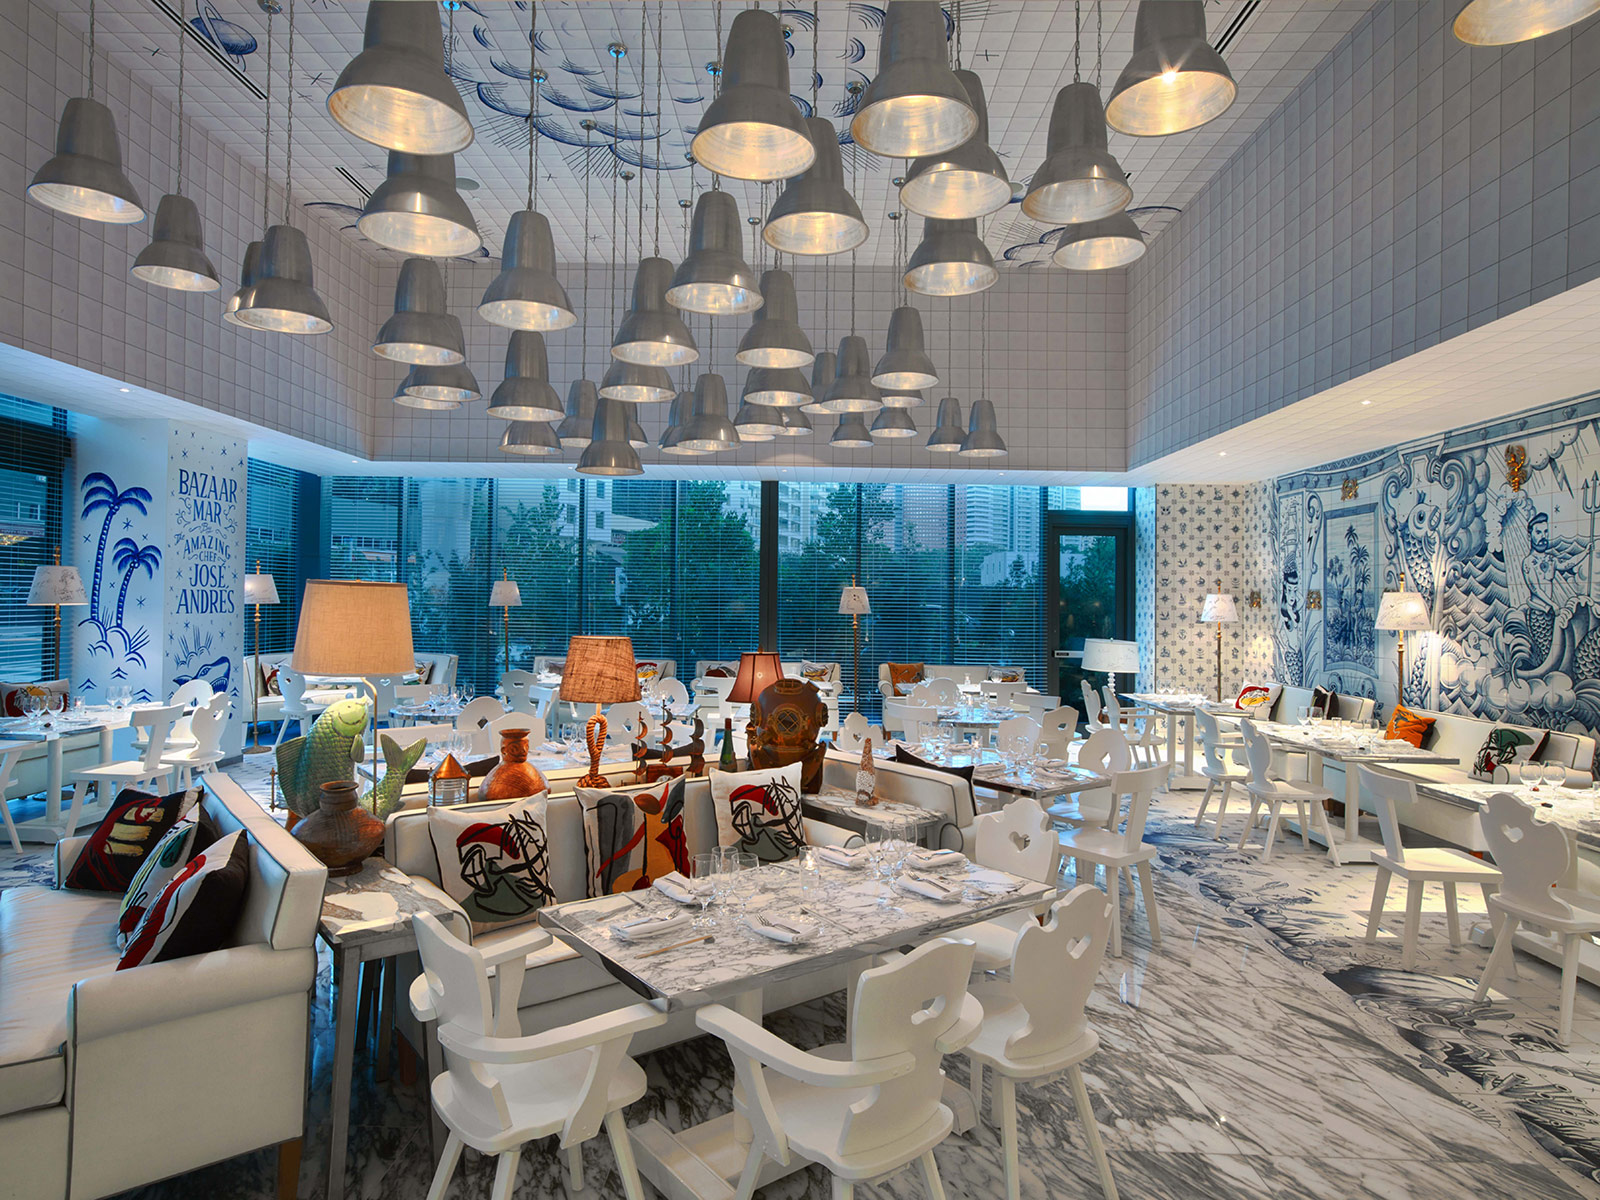 Restaurant Interiors To Inspire You In Your Dining Room Design